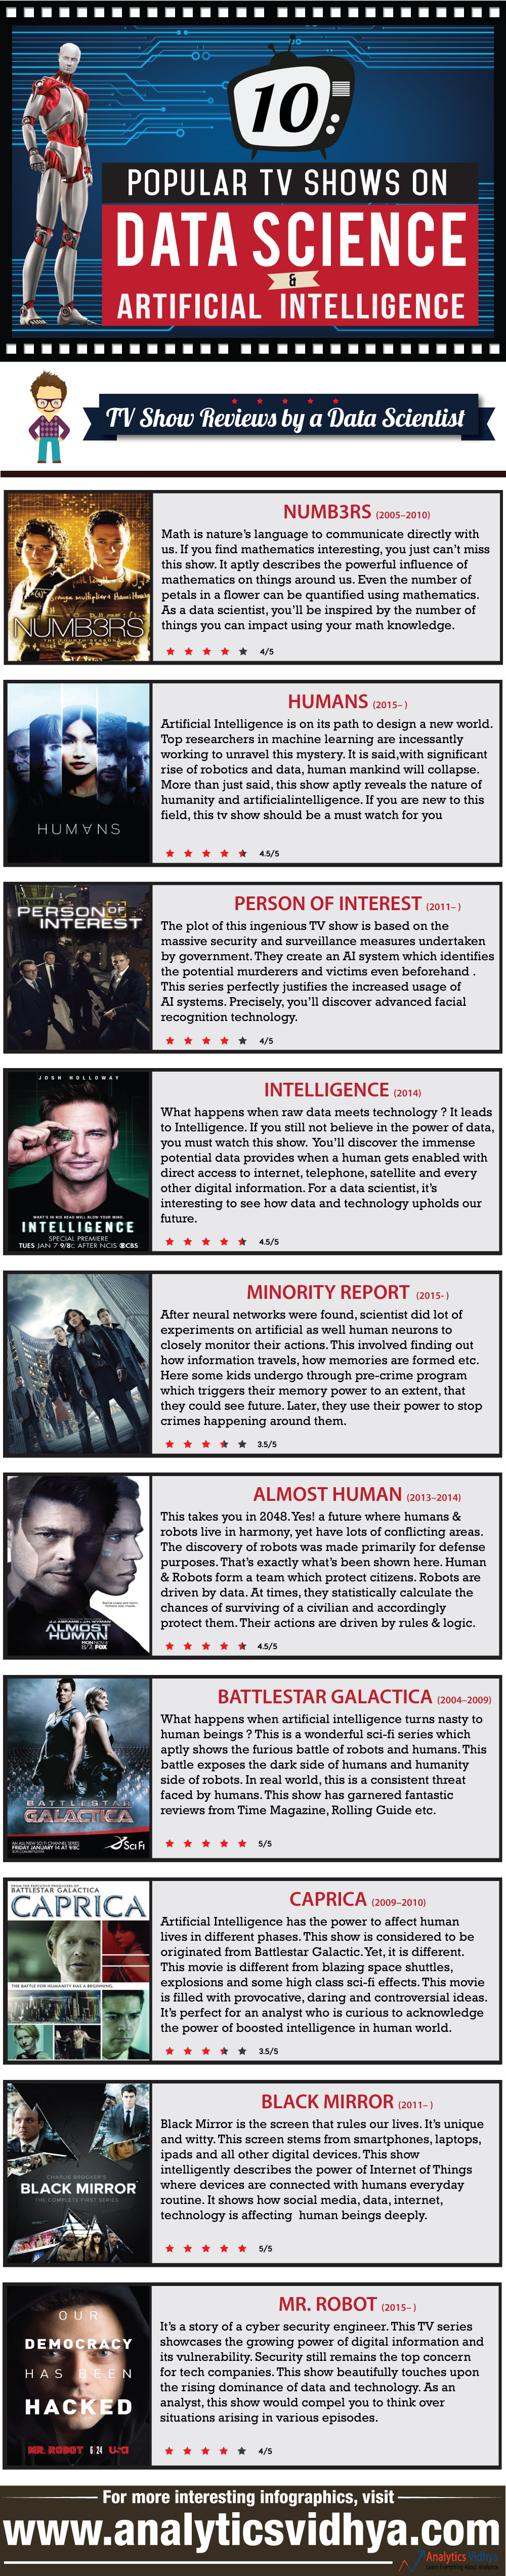 10 popular tv shows on data science and artificial intelligence